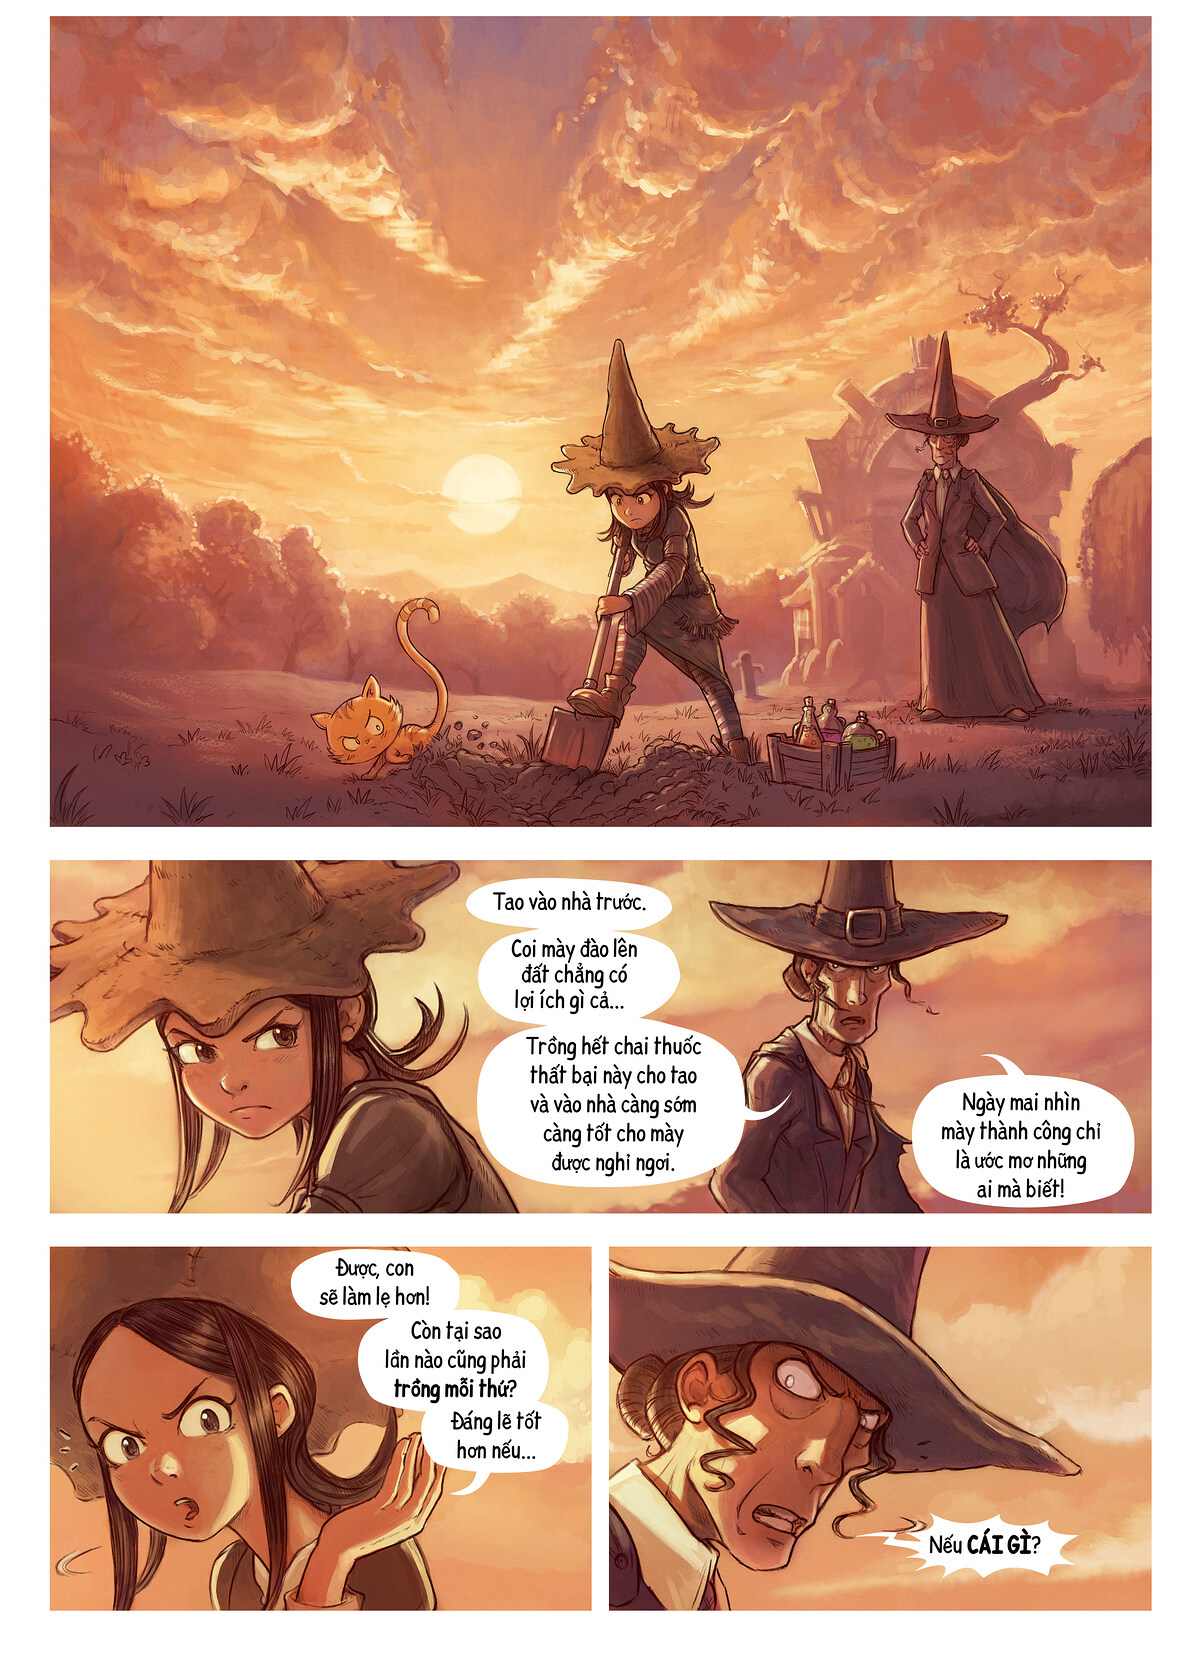 A webcomic page of Pepper&Carrot, Tập 19 [vi], trang 1